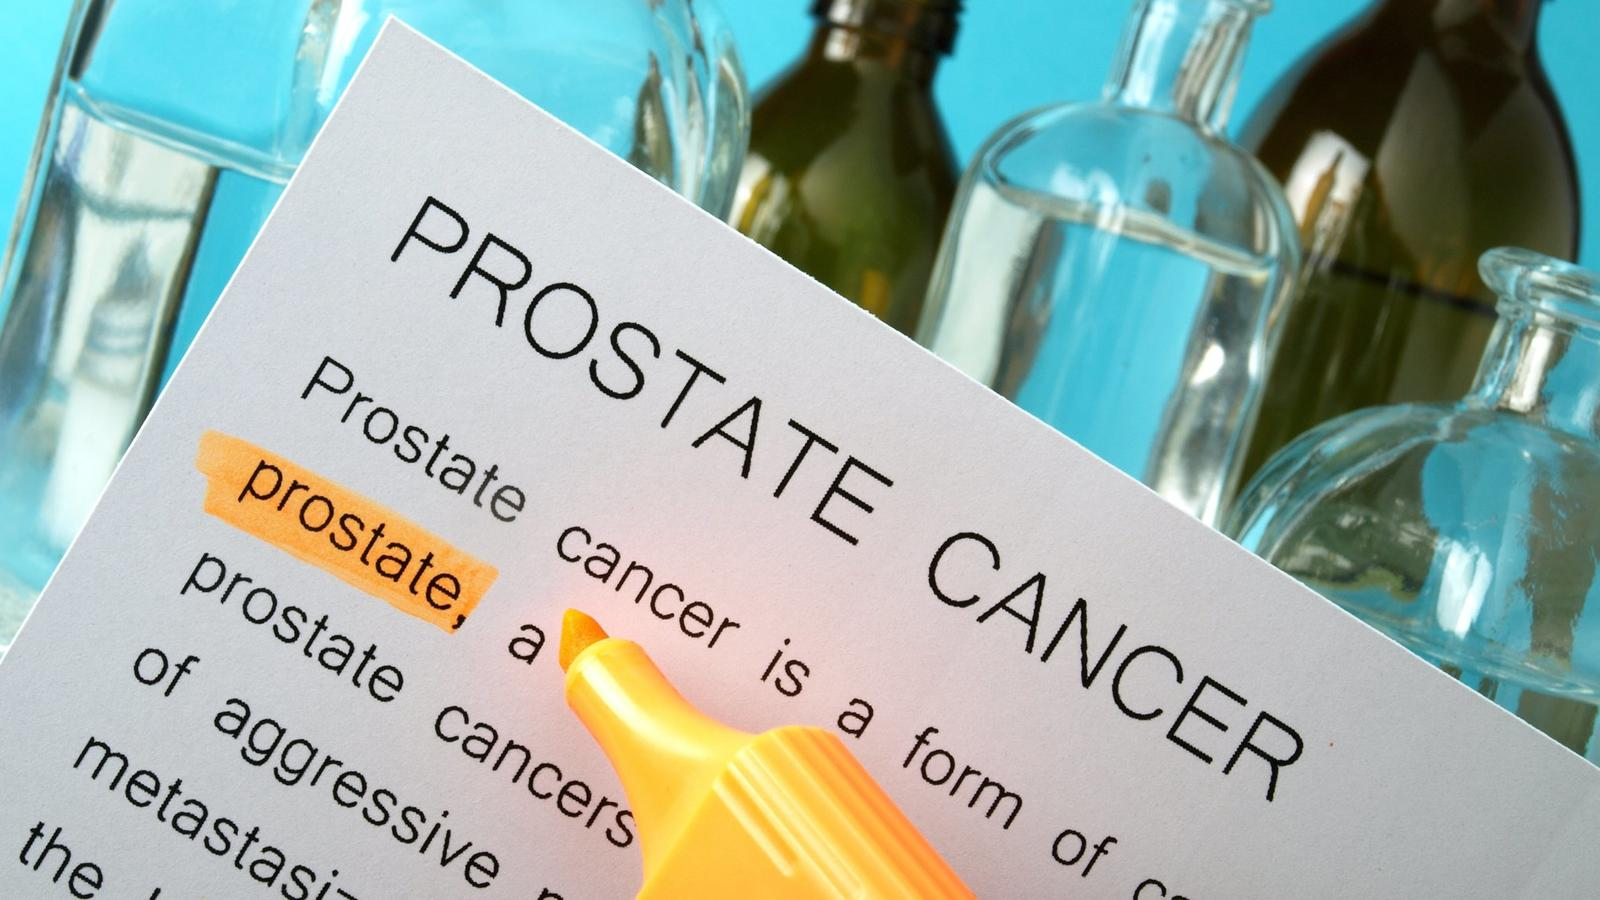 Treat or monitor early prostate cancer? The 10-year survival rate is the same. (alexdans / iStock)